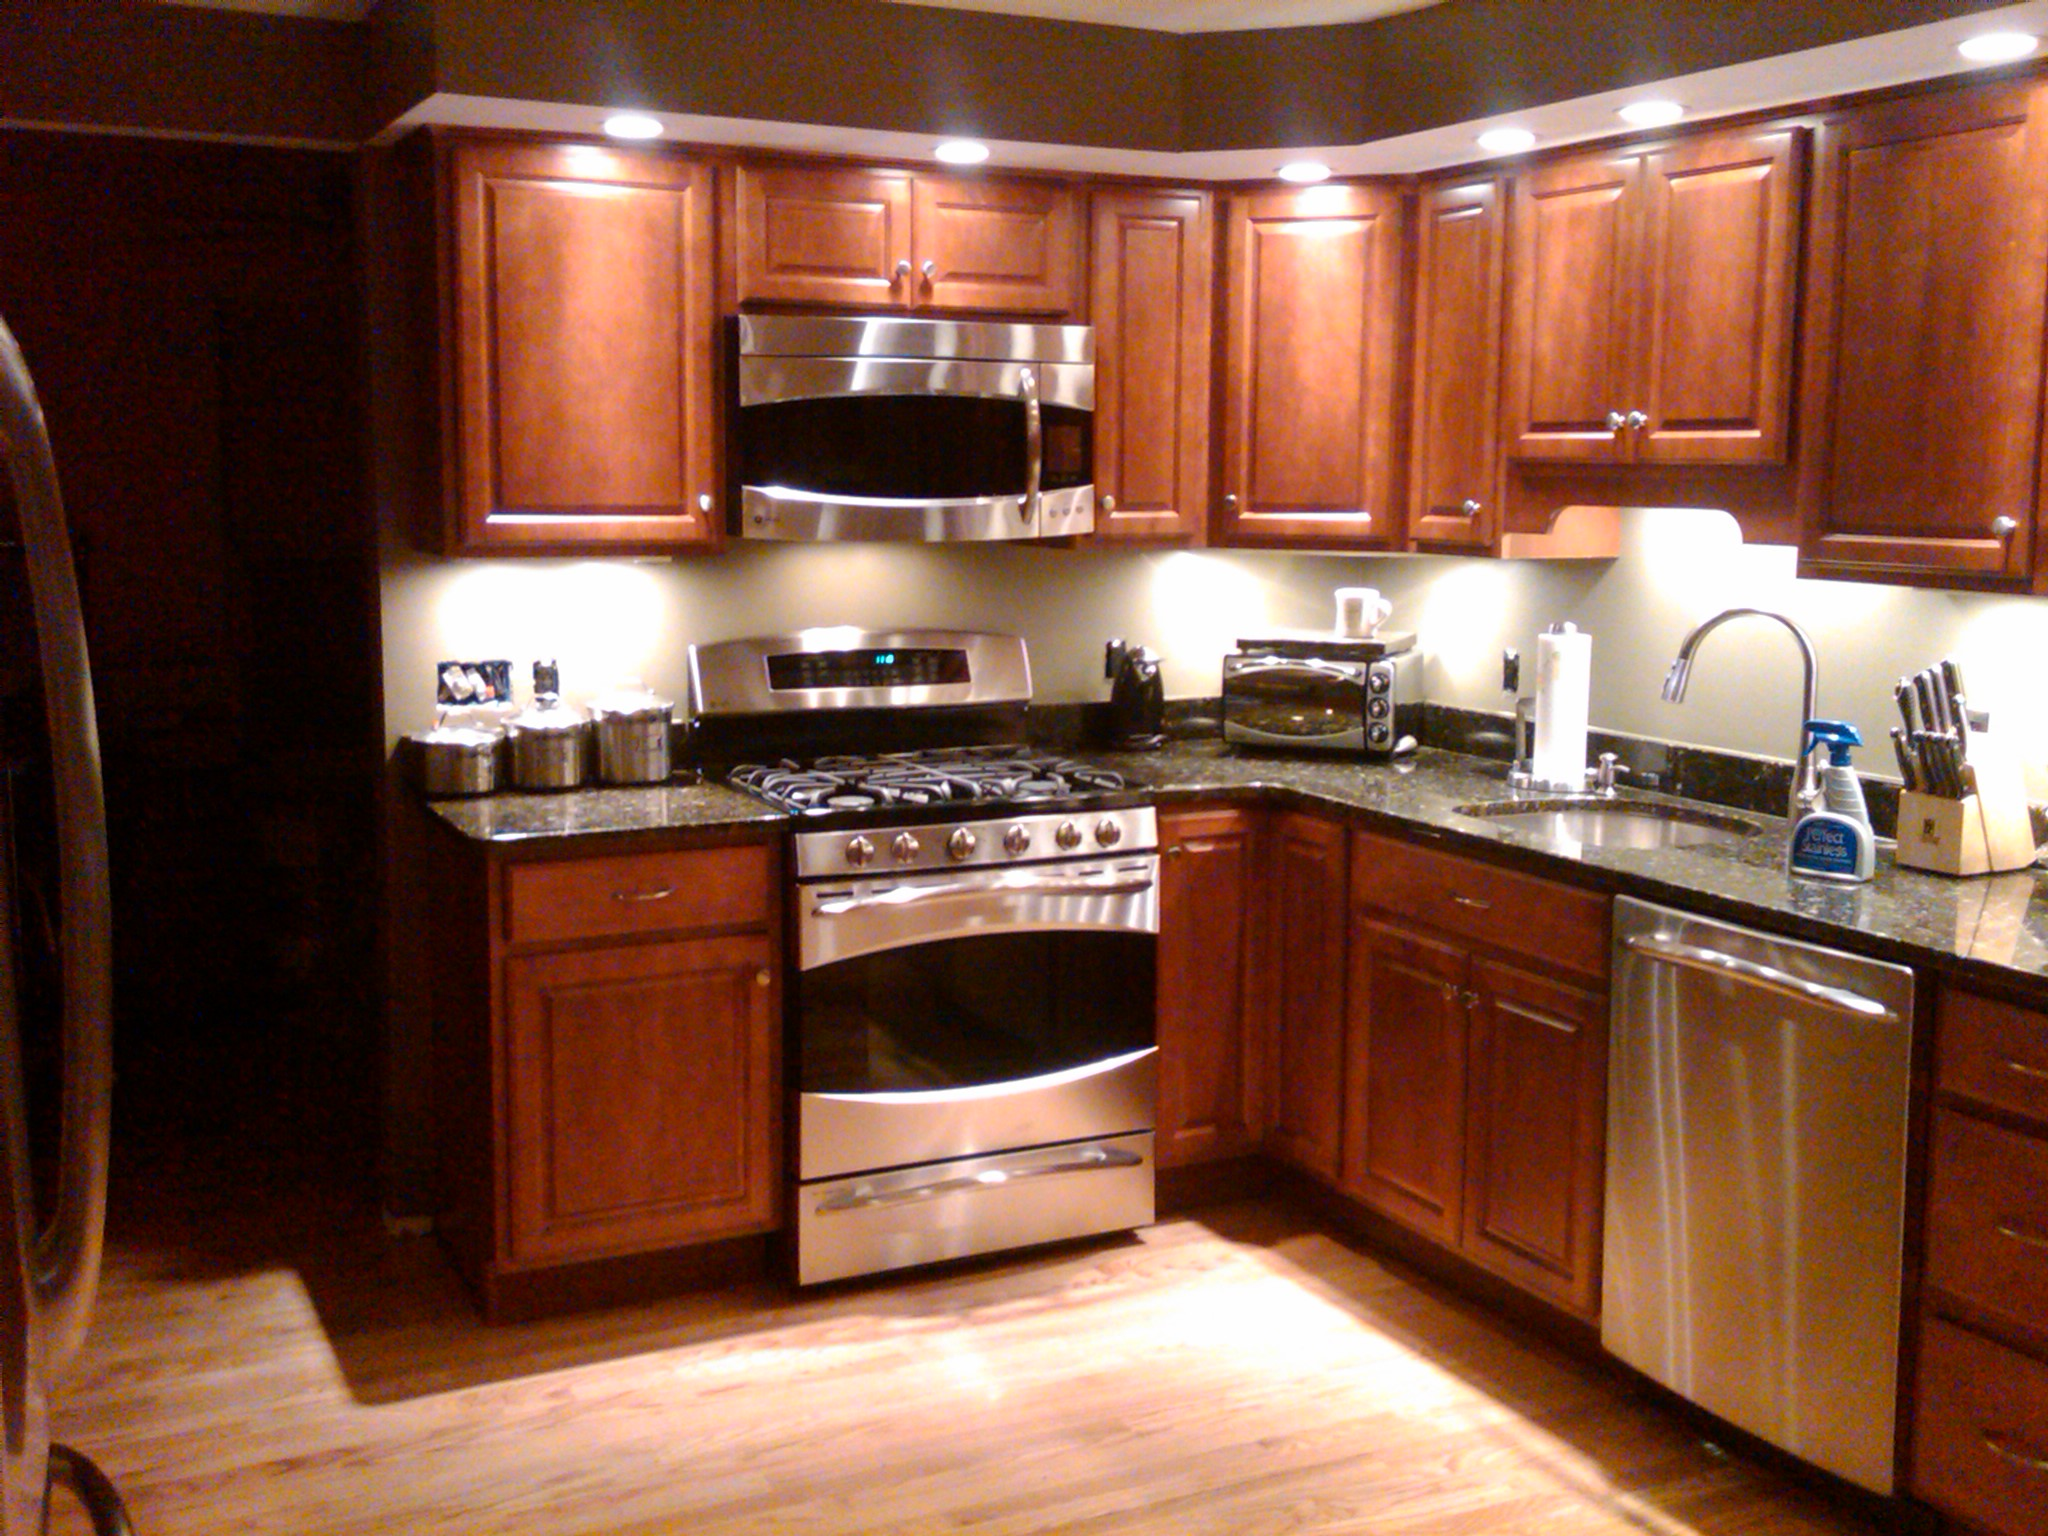 Recessed lights and undercabinet lights in a kitchen